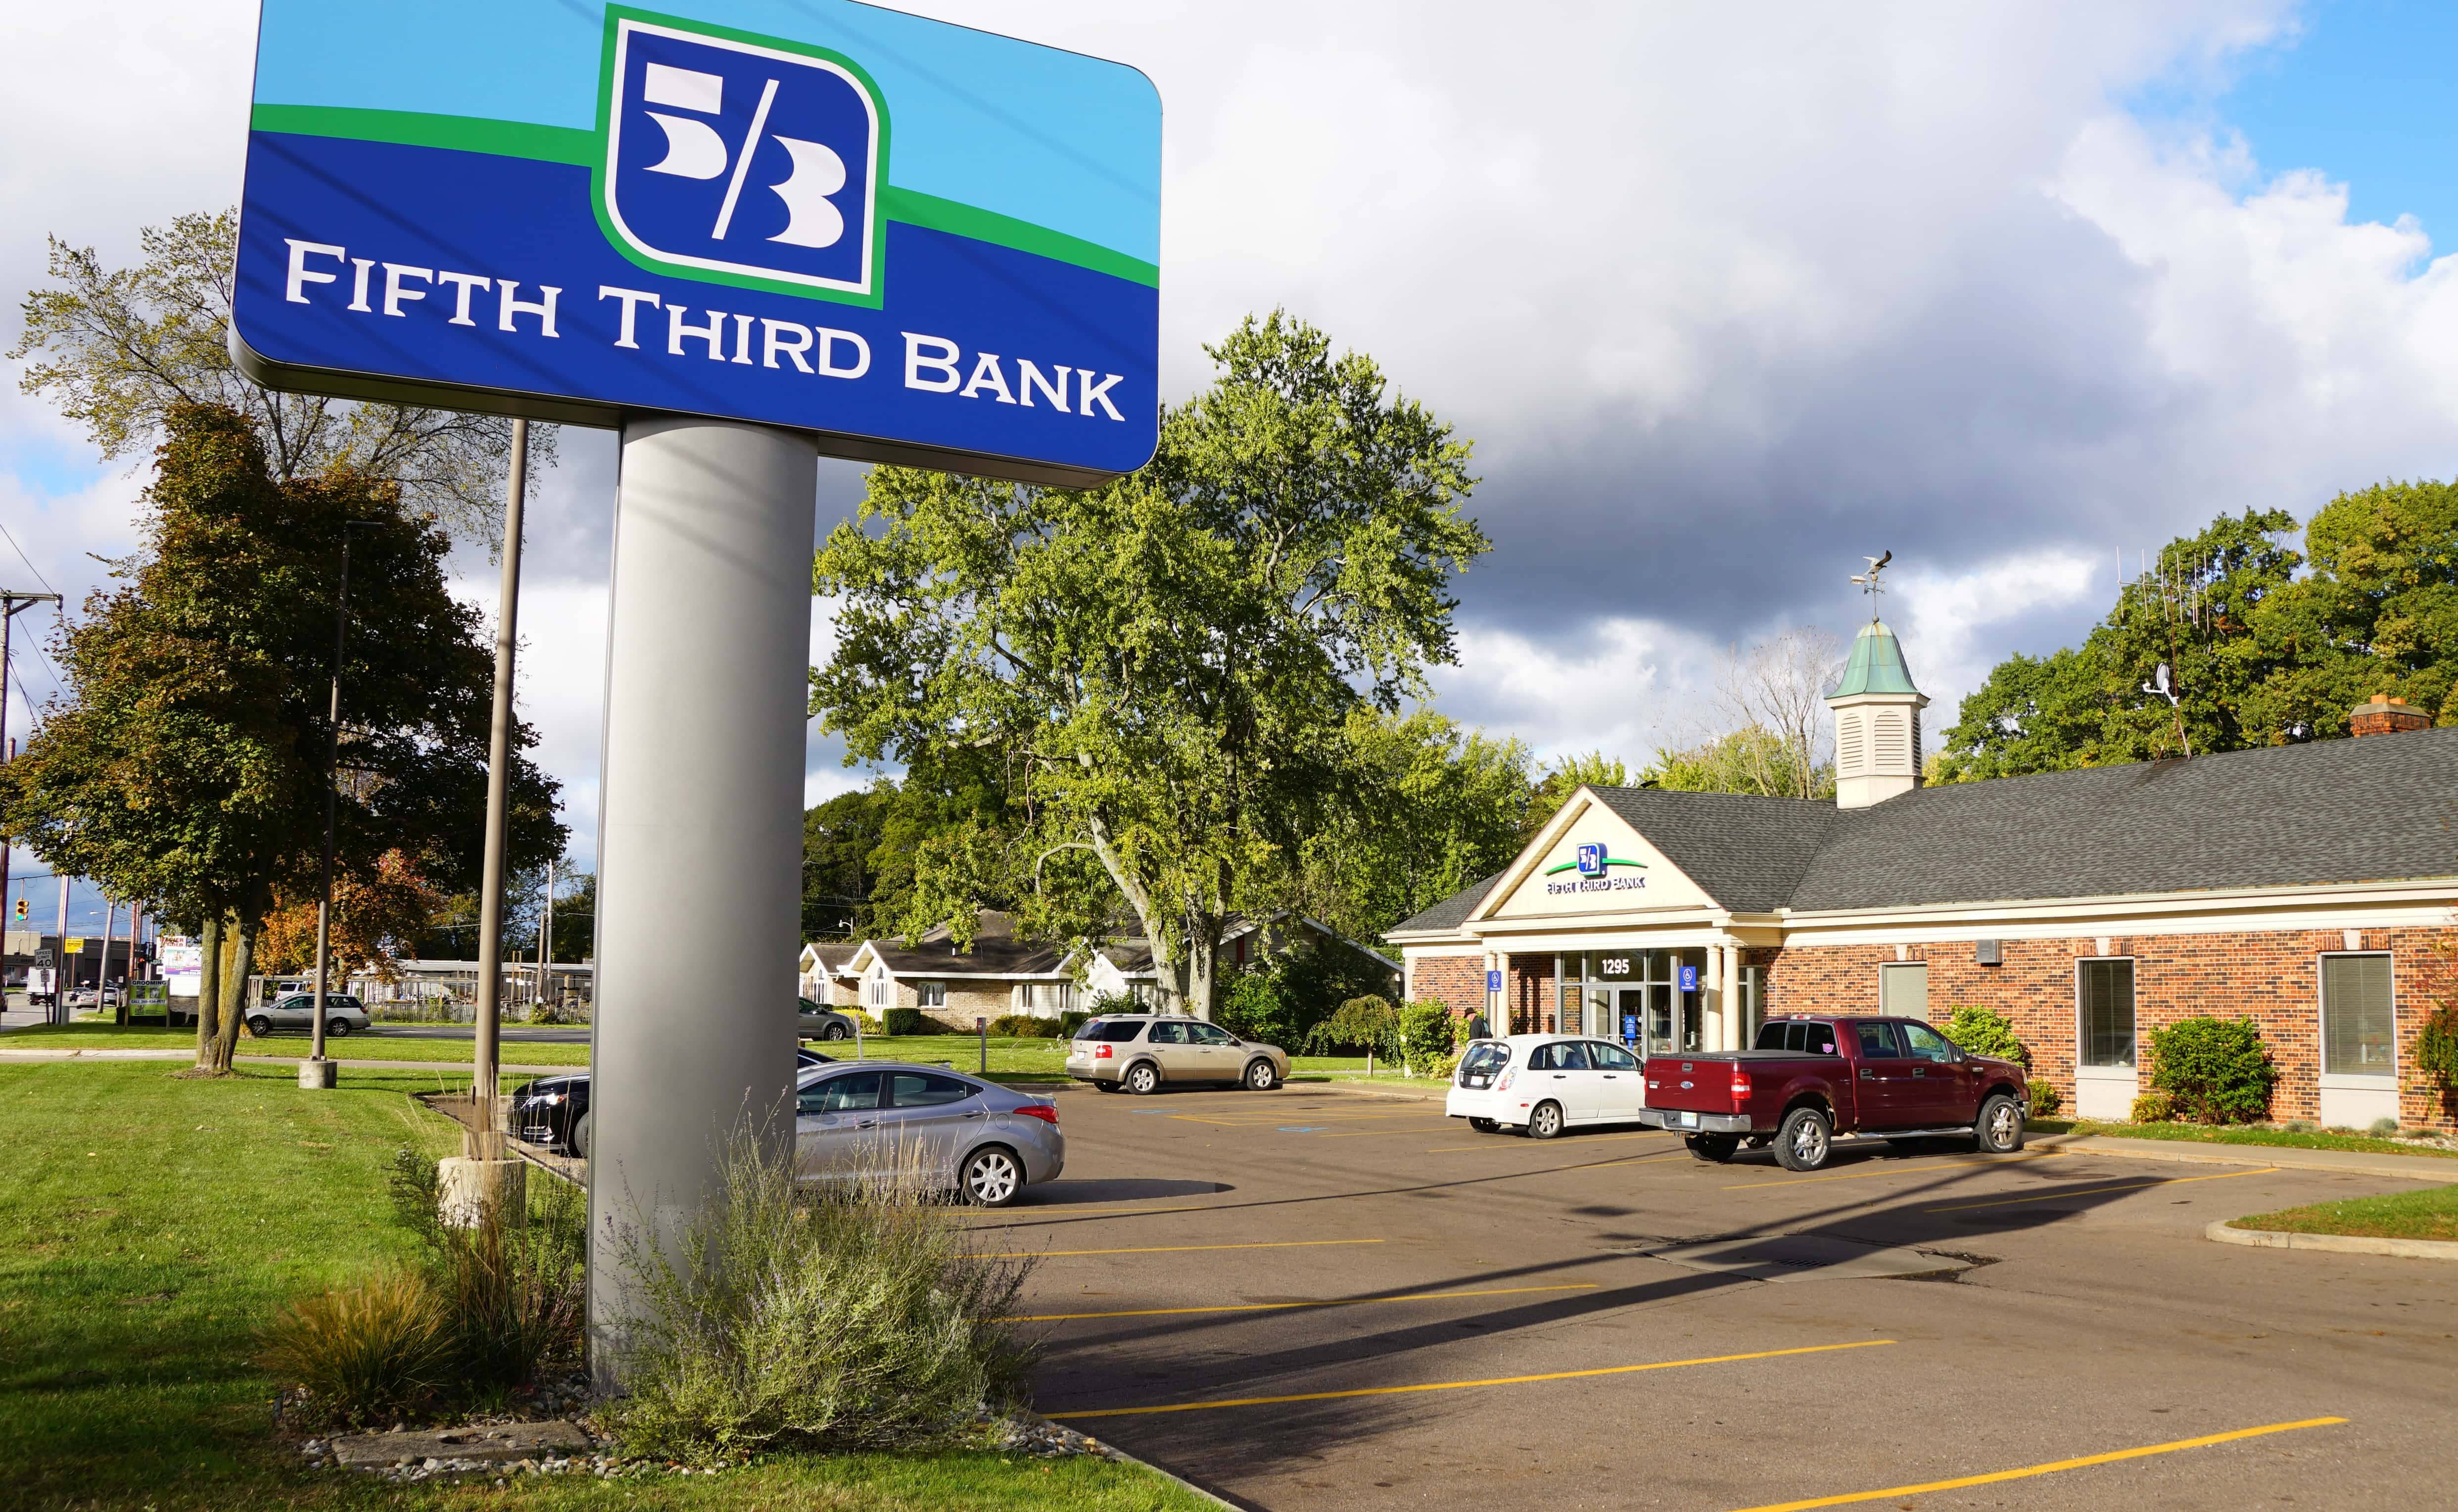 fifth third bank news and happenings